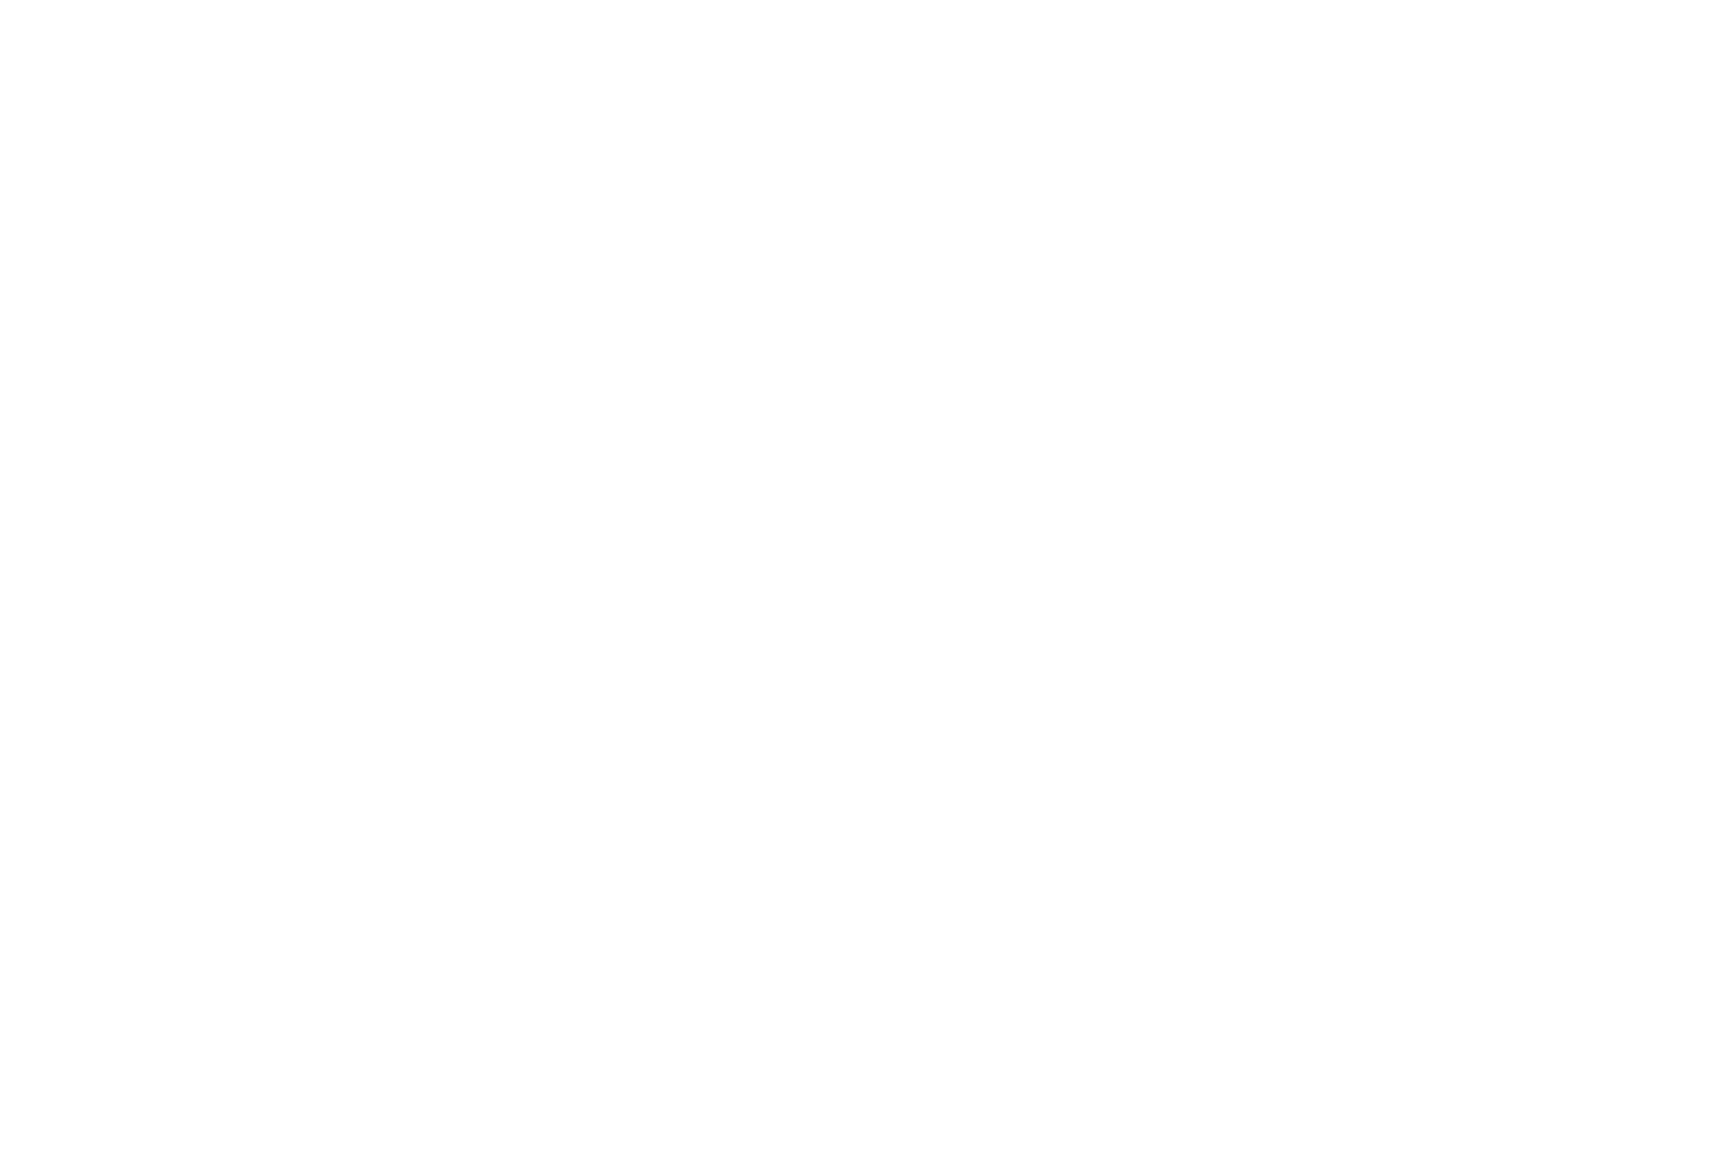 Cinetopia Film Festival (Michigan) - May 11, 16, 17 & 18